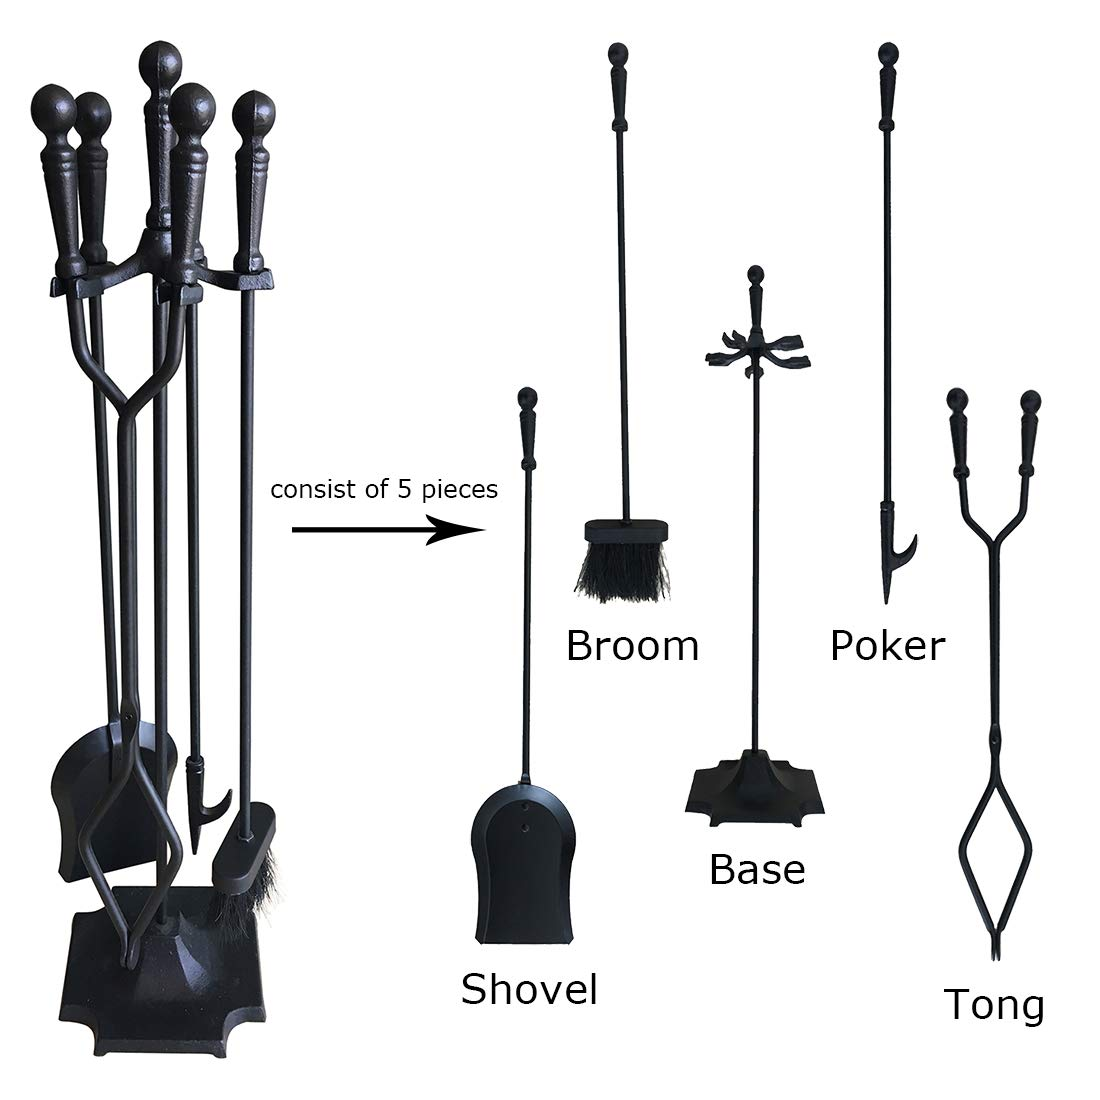 Tong Modern Black Shovel Poker and Stand Base Brush Tosnail 5 Pieces Wrought Iron Fireplace Tools Set